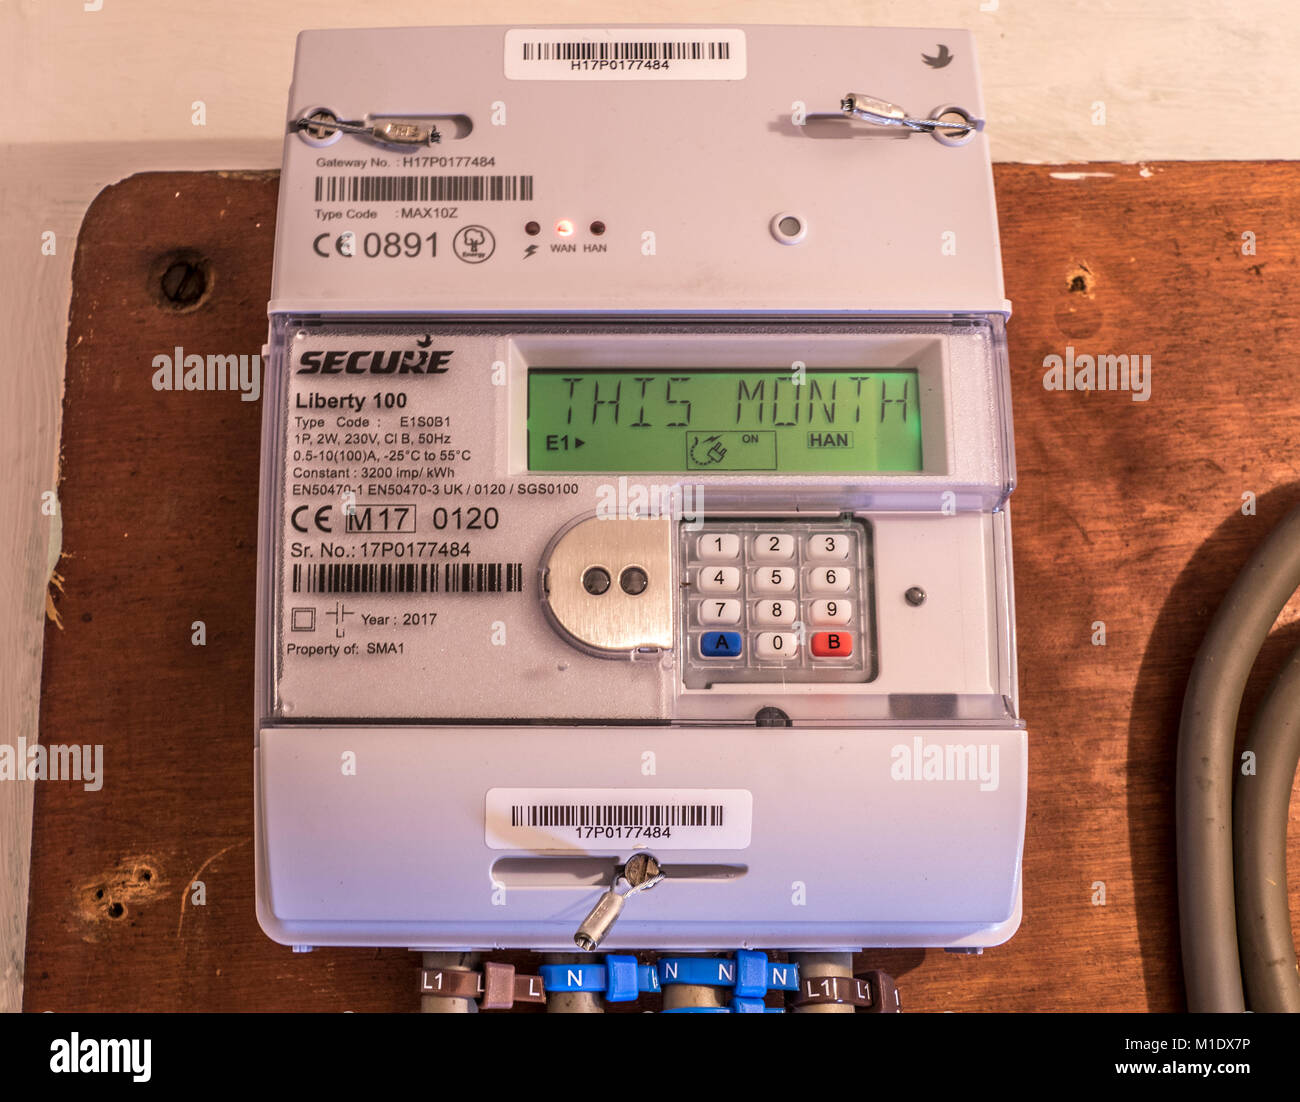 Kitchen Circuit Uk Ask Answer Wiring Diagram Nec Domestic Electricity Meter Stock Photos Images Alamy Out Breaker Not Tripped Circuits